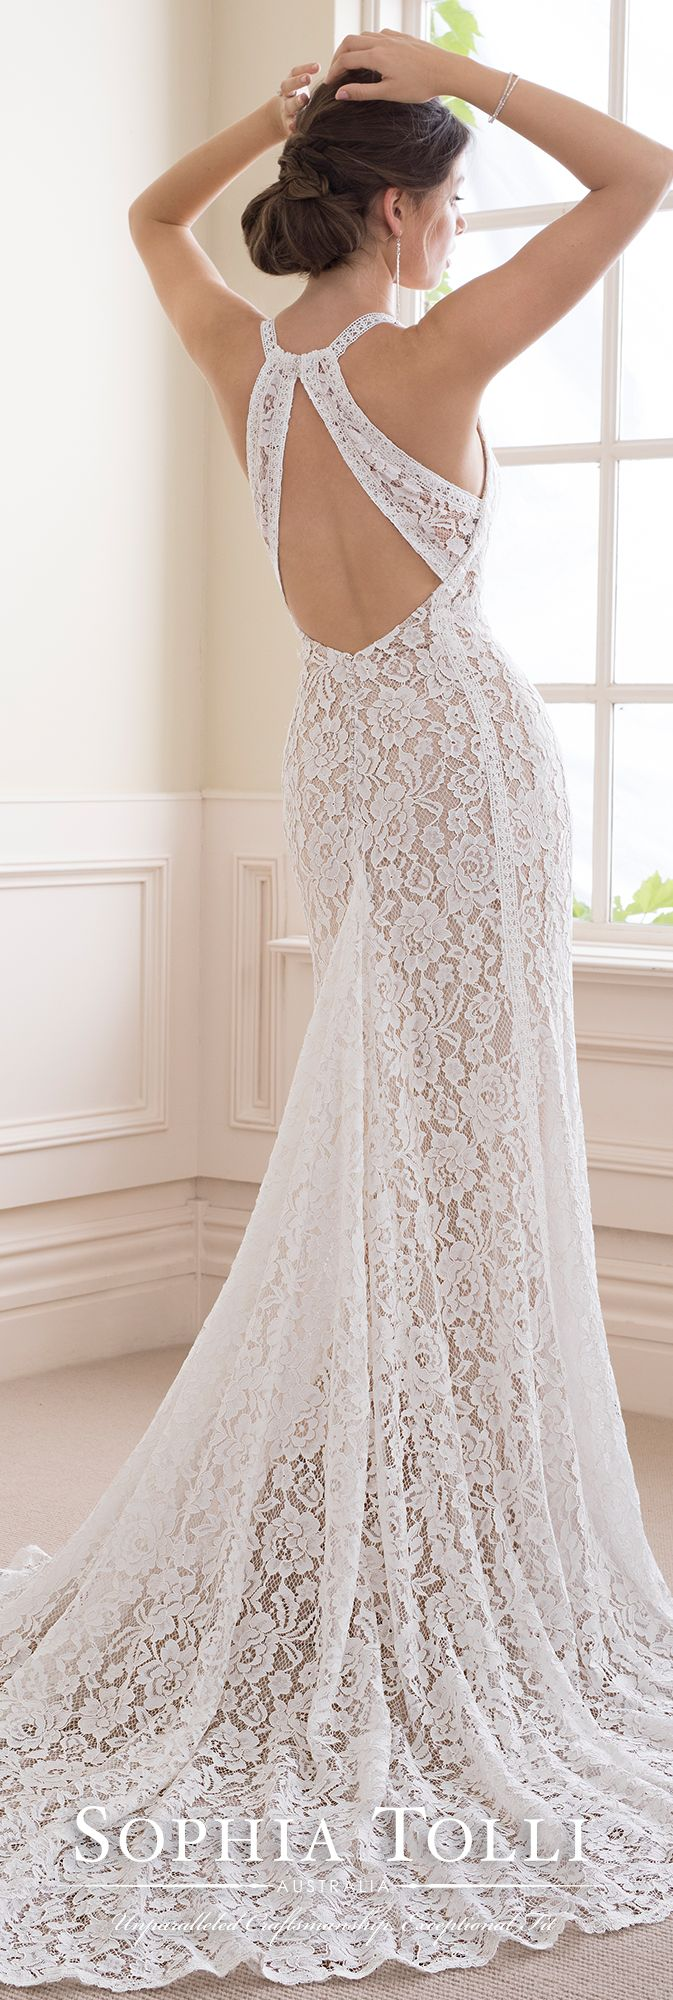 Boho chic allover lace sheath wedding gown sensory candy